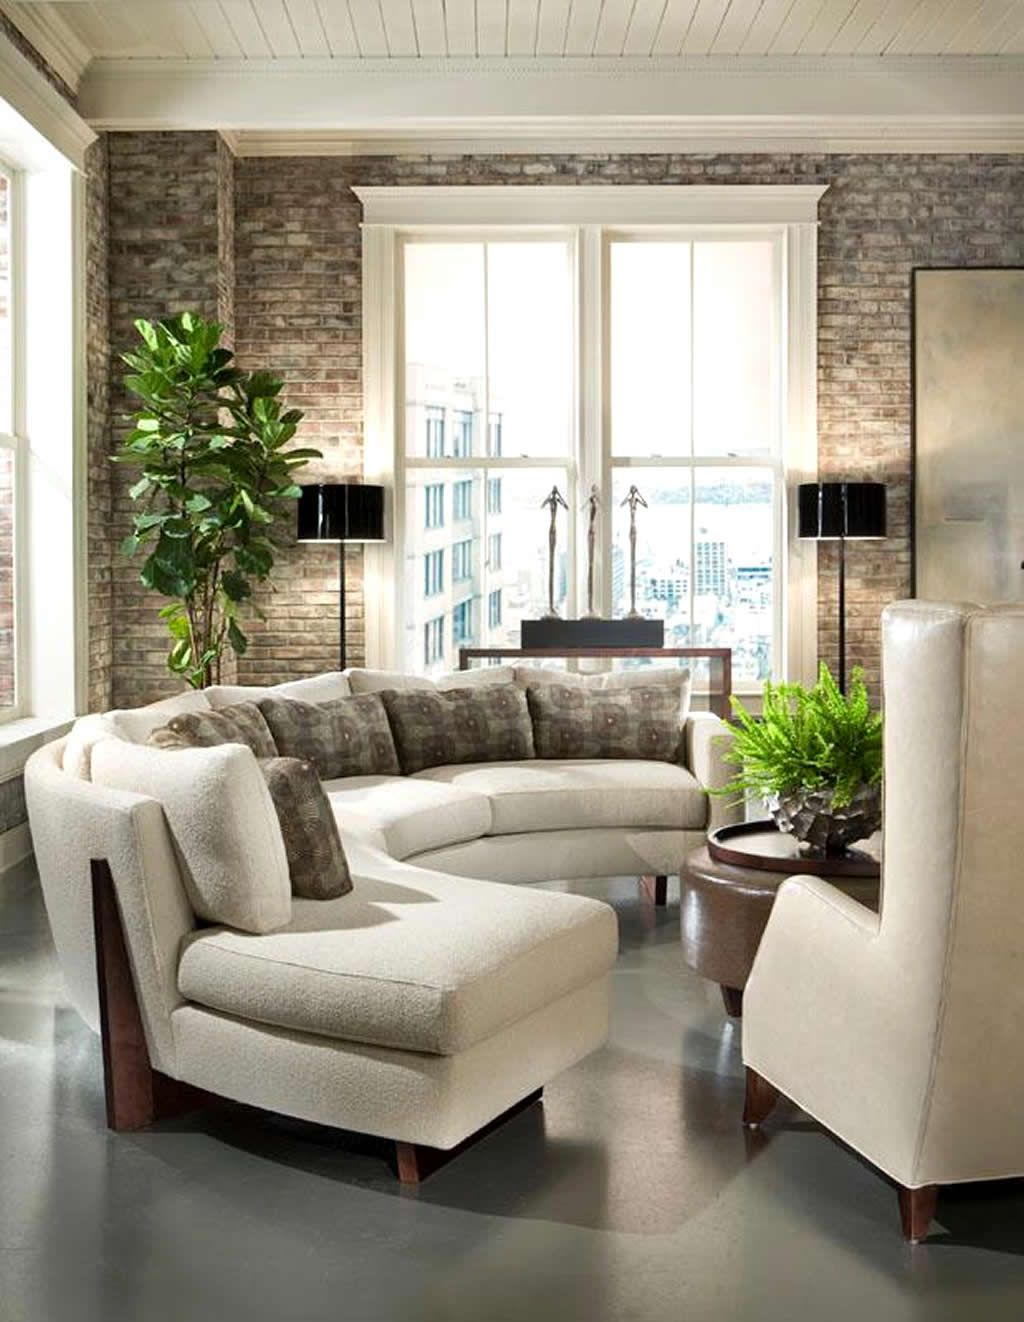 Seeking Information About Interior Design For The Home